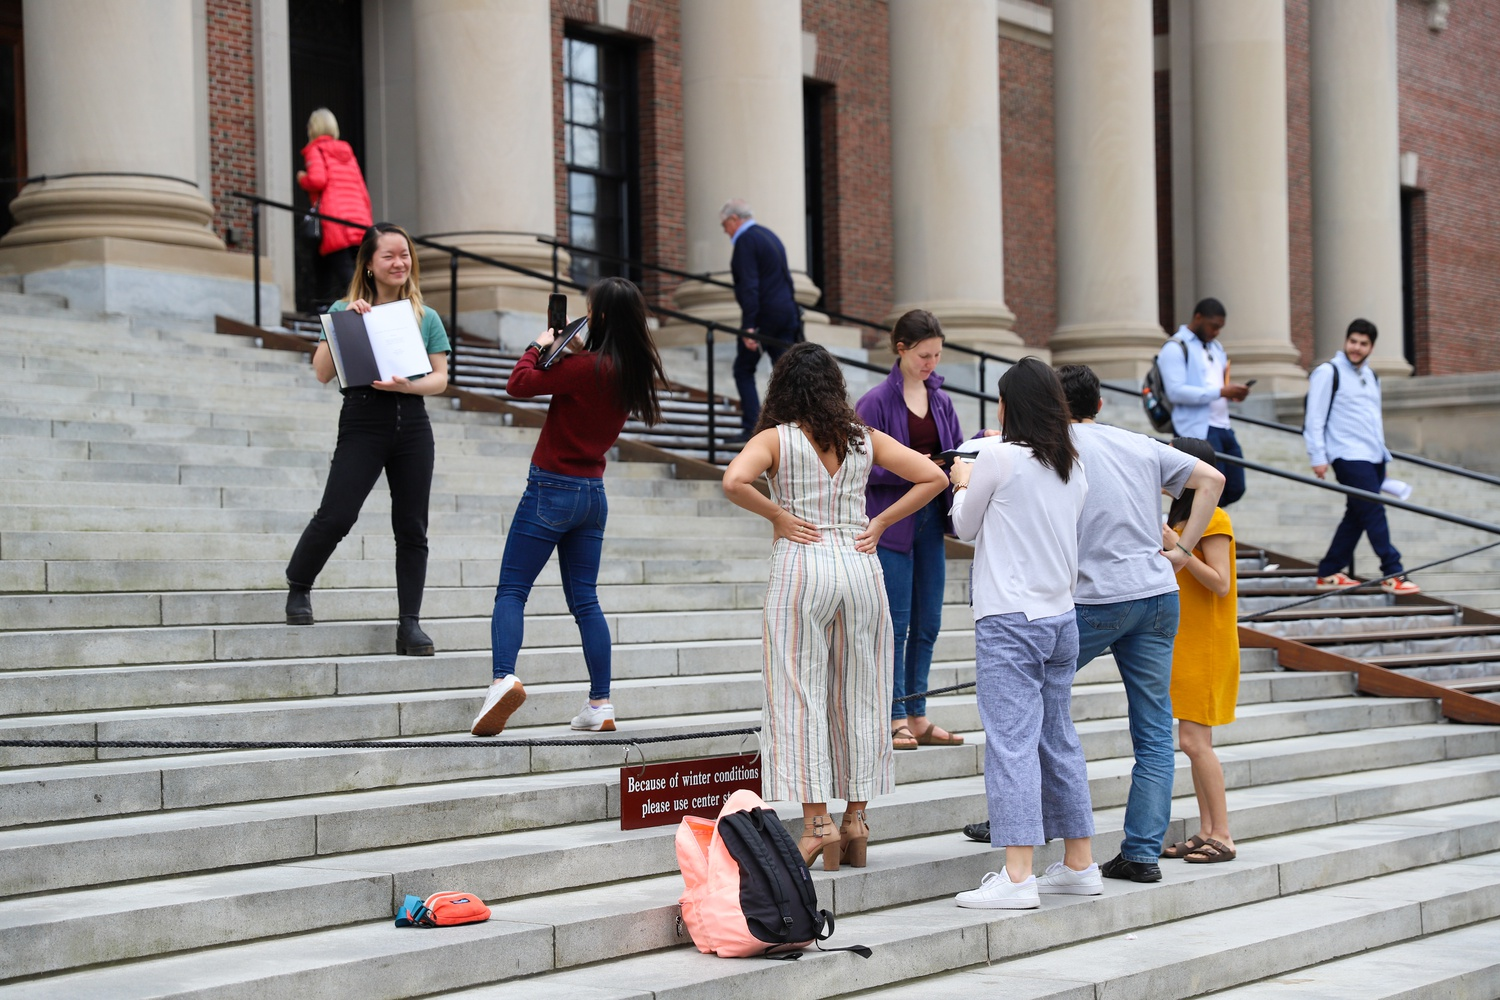 As many seniors were completing their theses during the month of March, students rushed to take the classic thesis picture on Widener Steps amid the chaos of vacating campus due to the novel coronavirus outbreak.